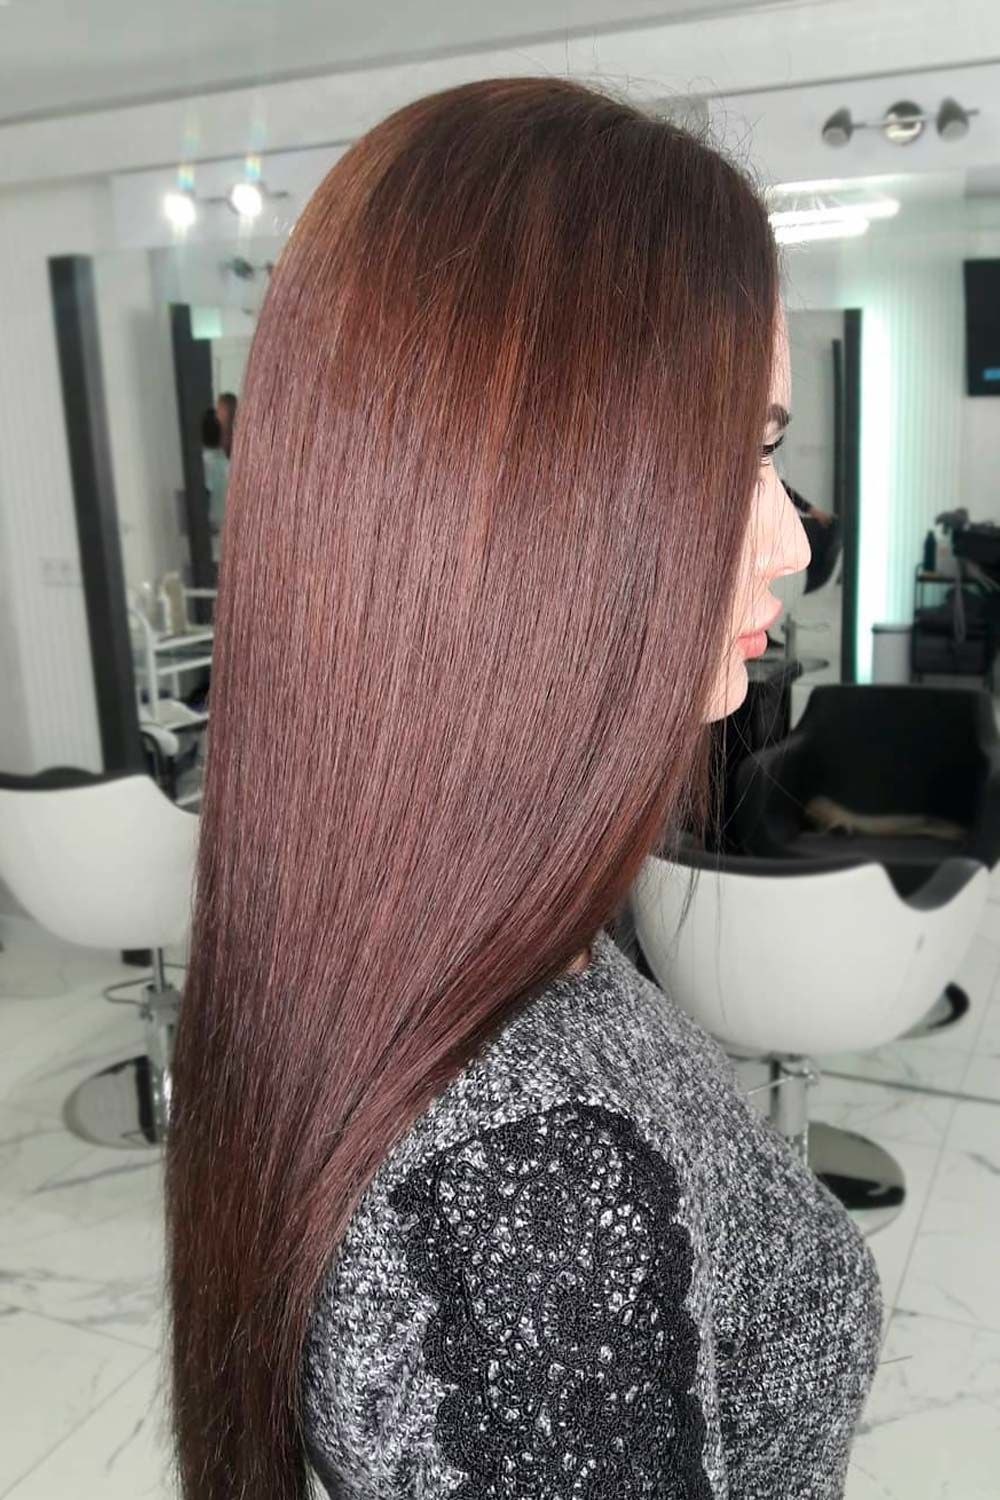 Winter Hair Color - Chocolate Brown